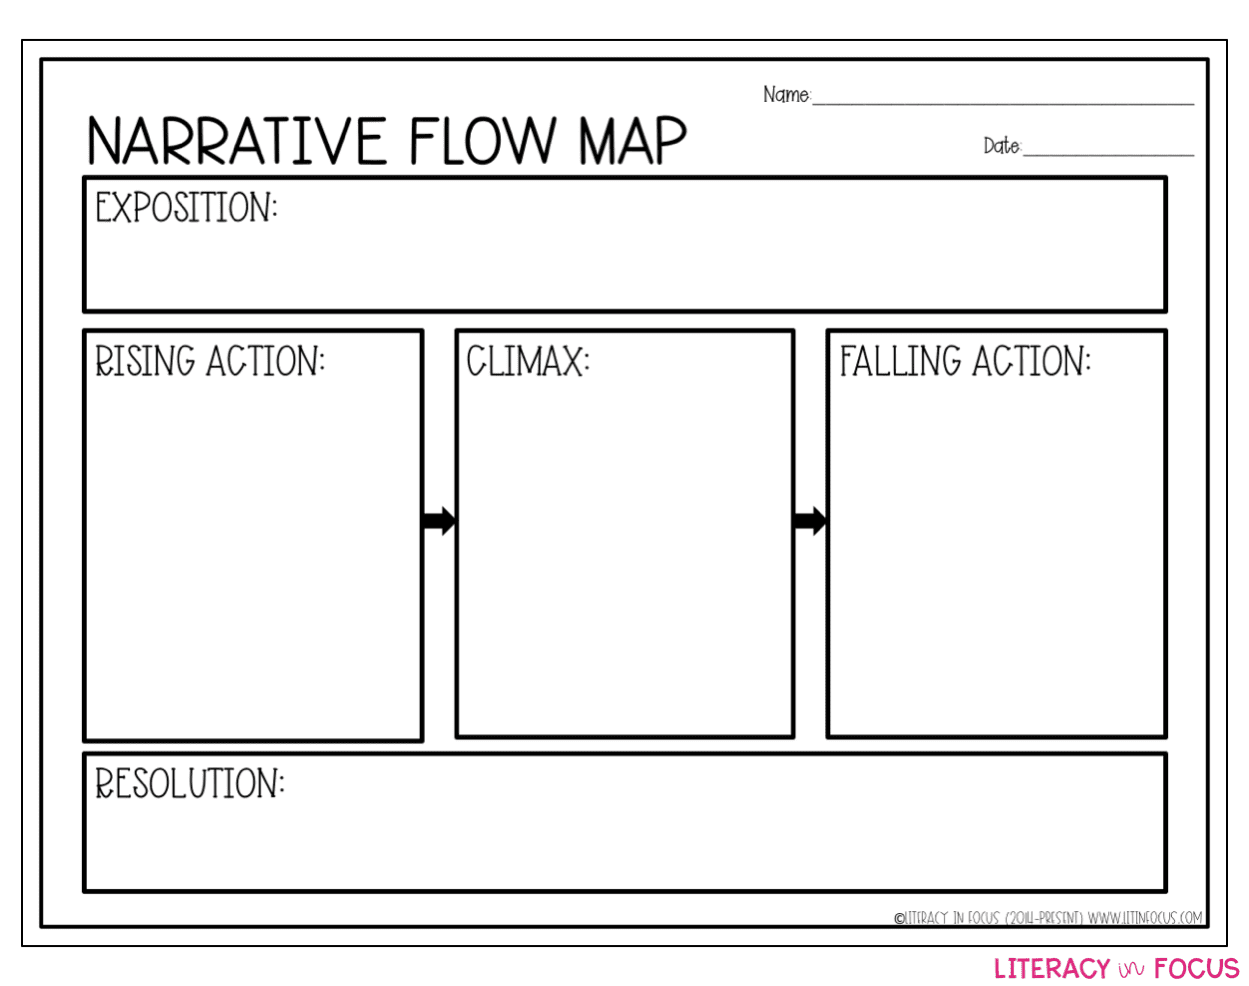 15 graphic organizers for narrative writing | literacy in focus | a